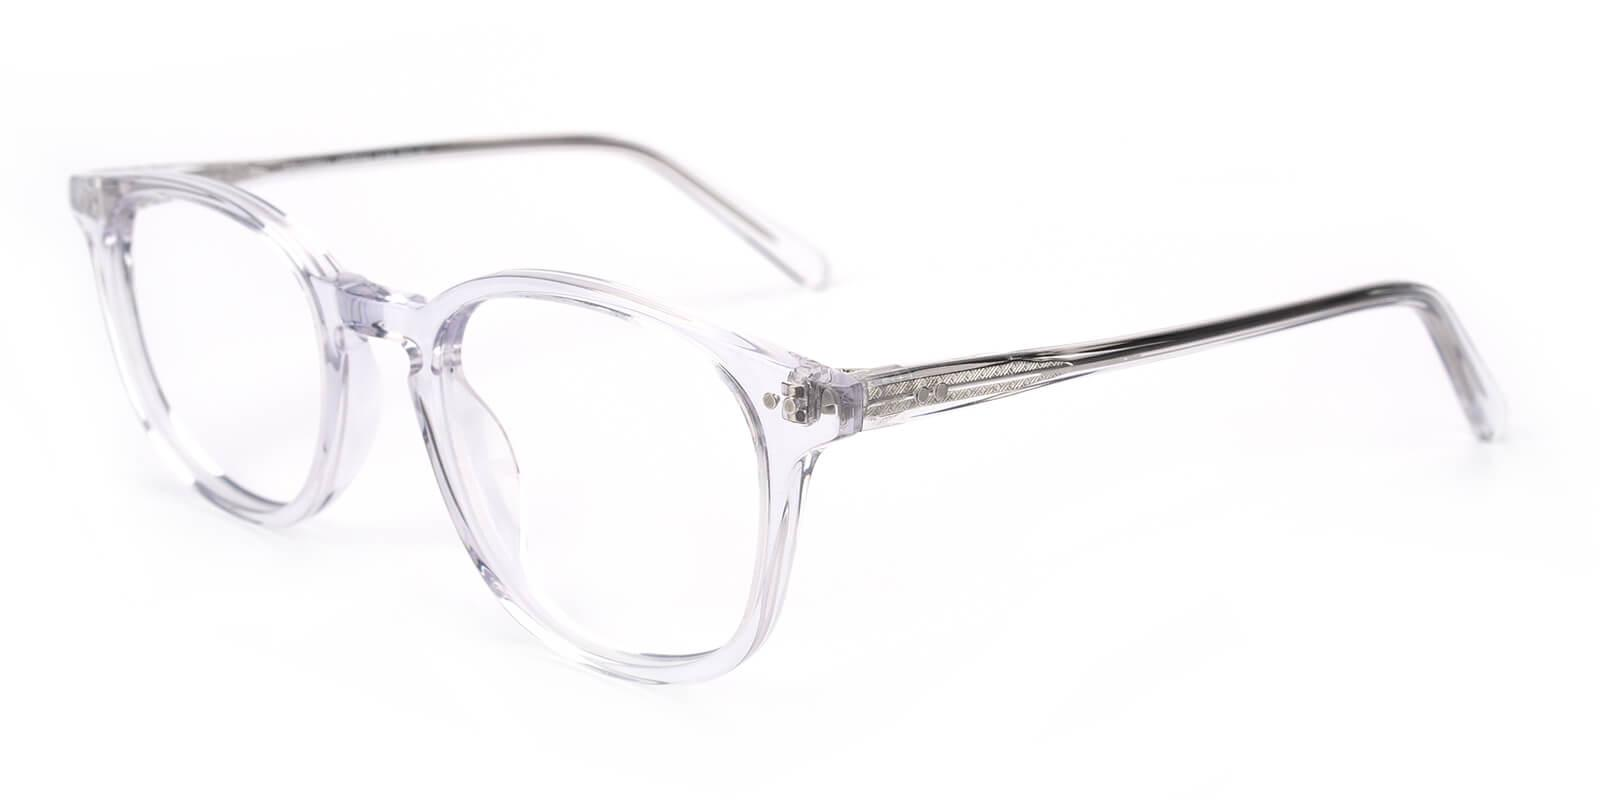 Trendiary-Translucent-Square-Acetate-Eyeglasses-additional1